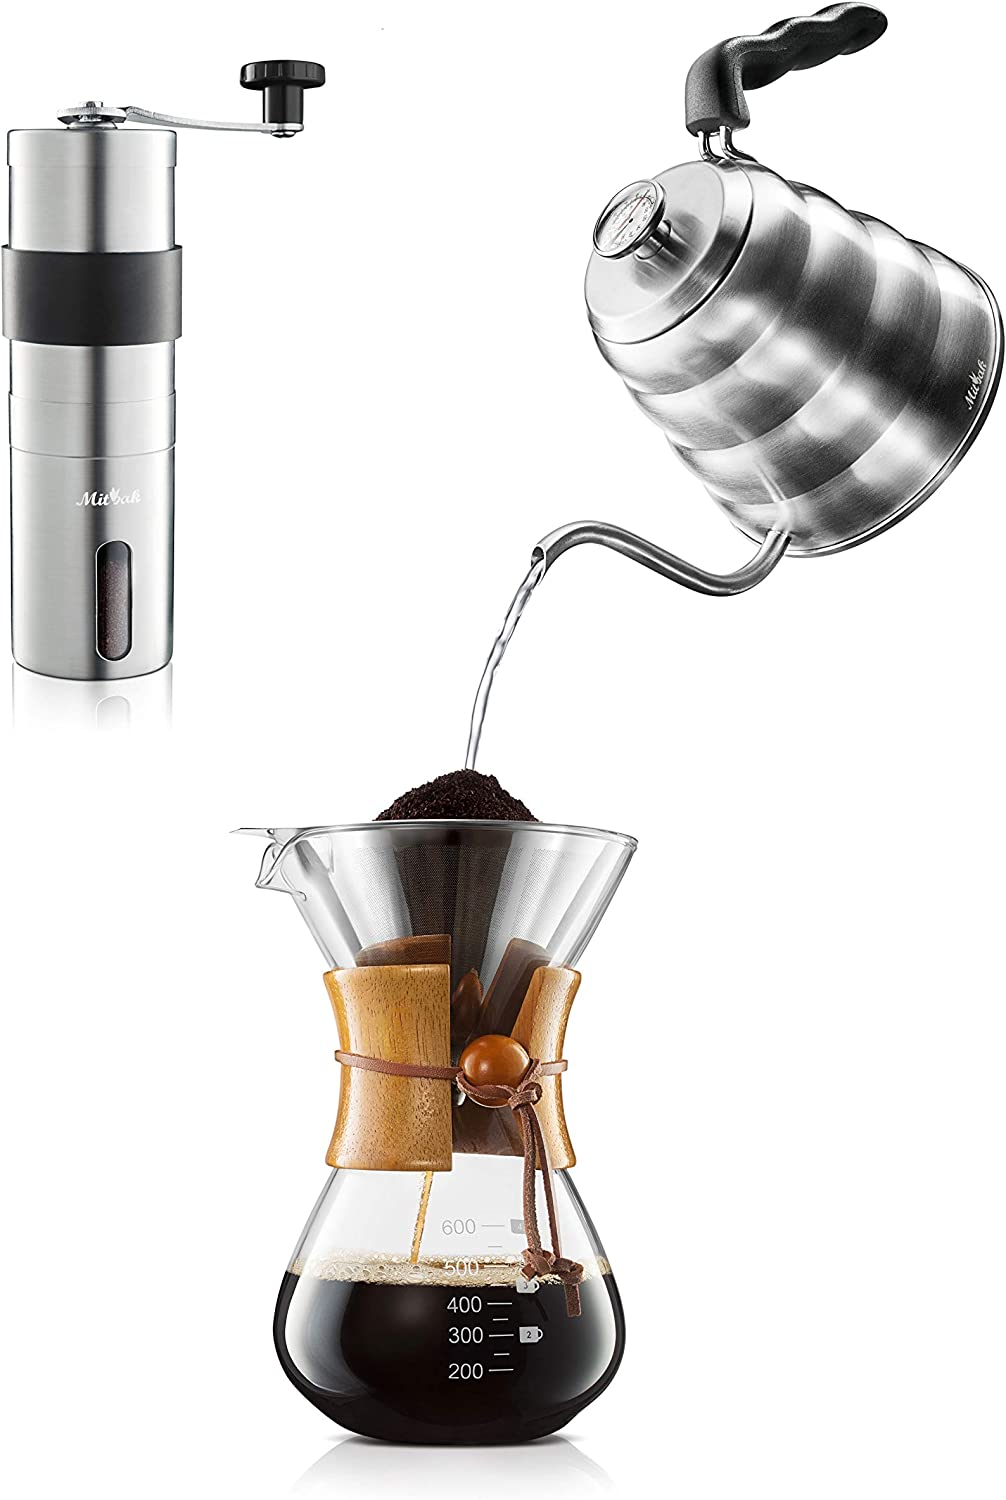 MITBAK Pour Over Coffee Maker Set | Kit Includes Gooseneck Kettle with Thermometer, Coffee Mill Grinder & Coffee Dripper Brewer | Great Replcaement for Coffee Machines